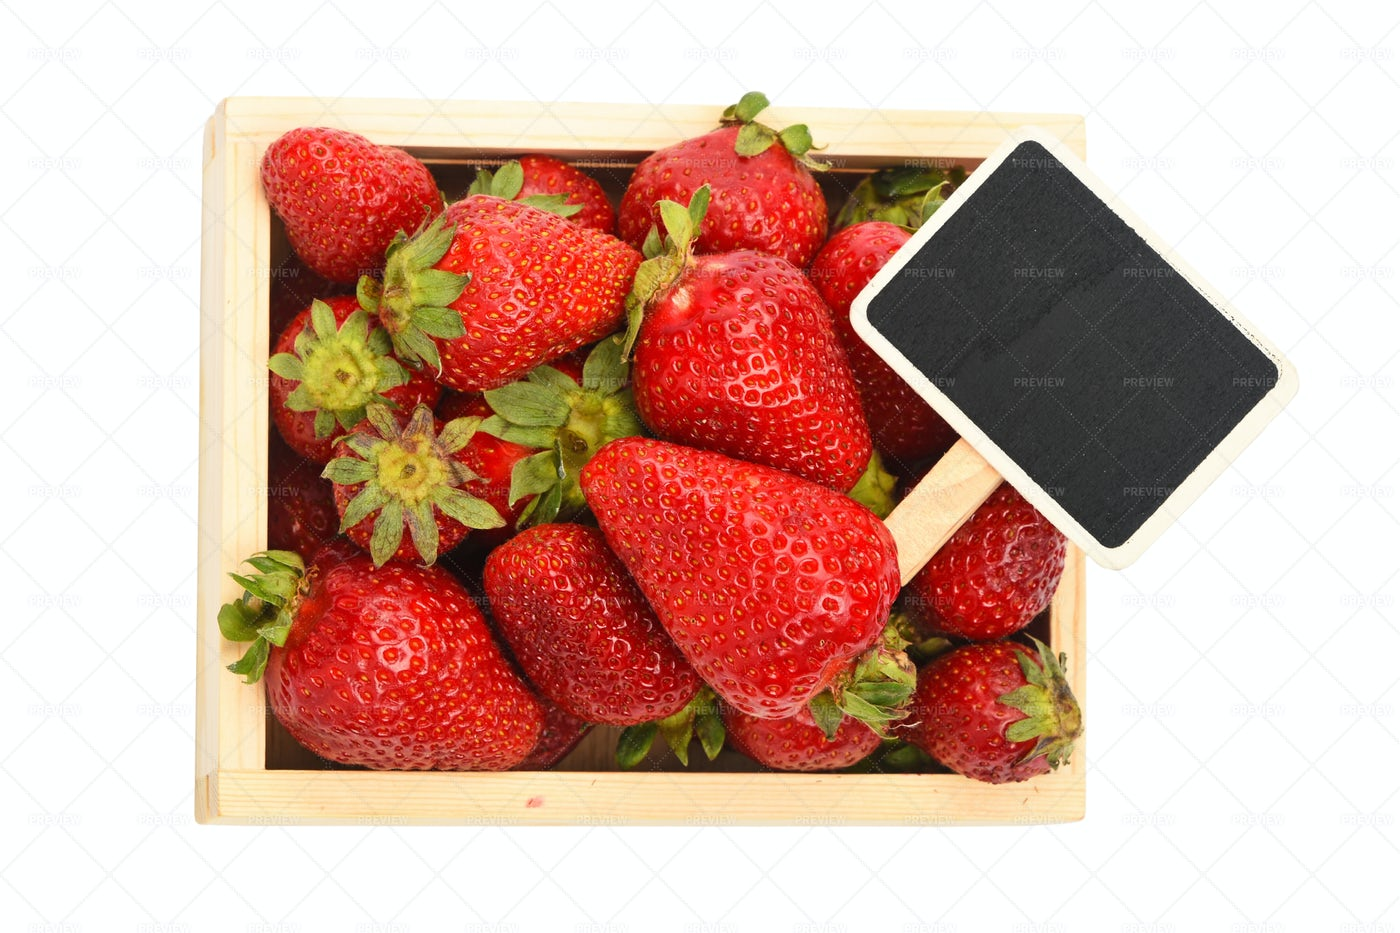 Strawberry In Wooden Box: Stock Photos